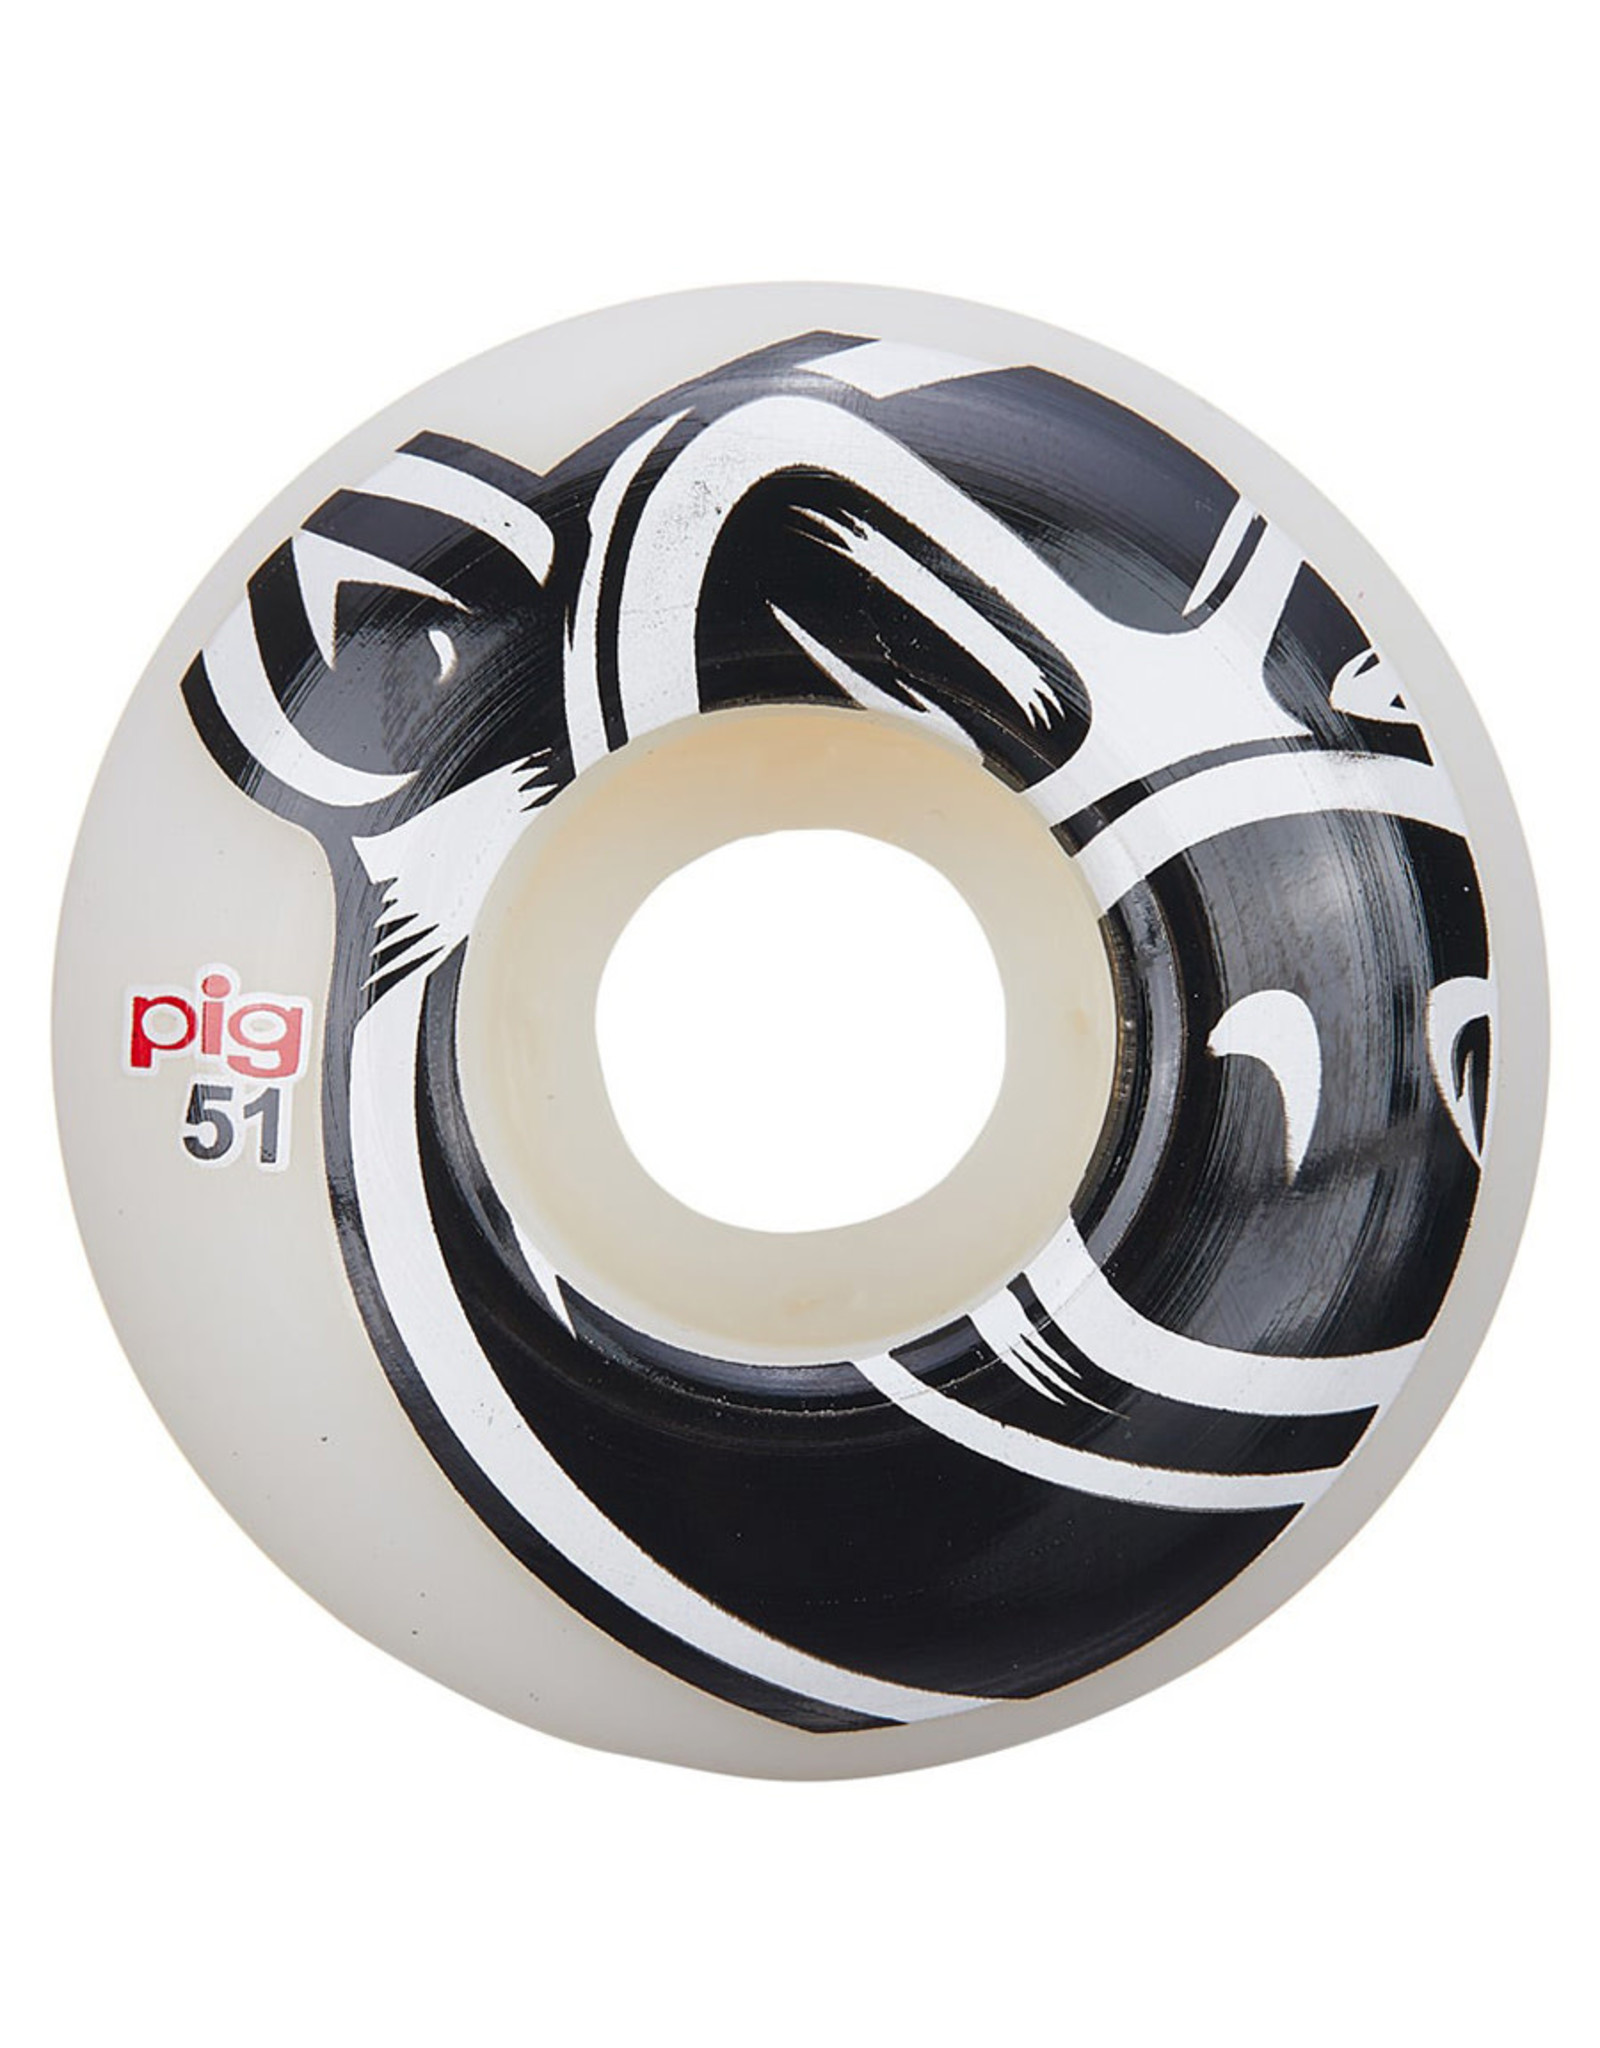 Pig Pig Wheels Head Natural White (51mm)